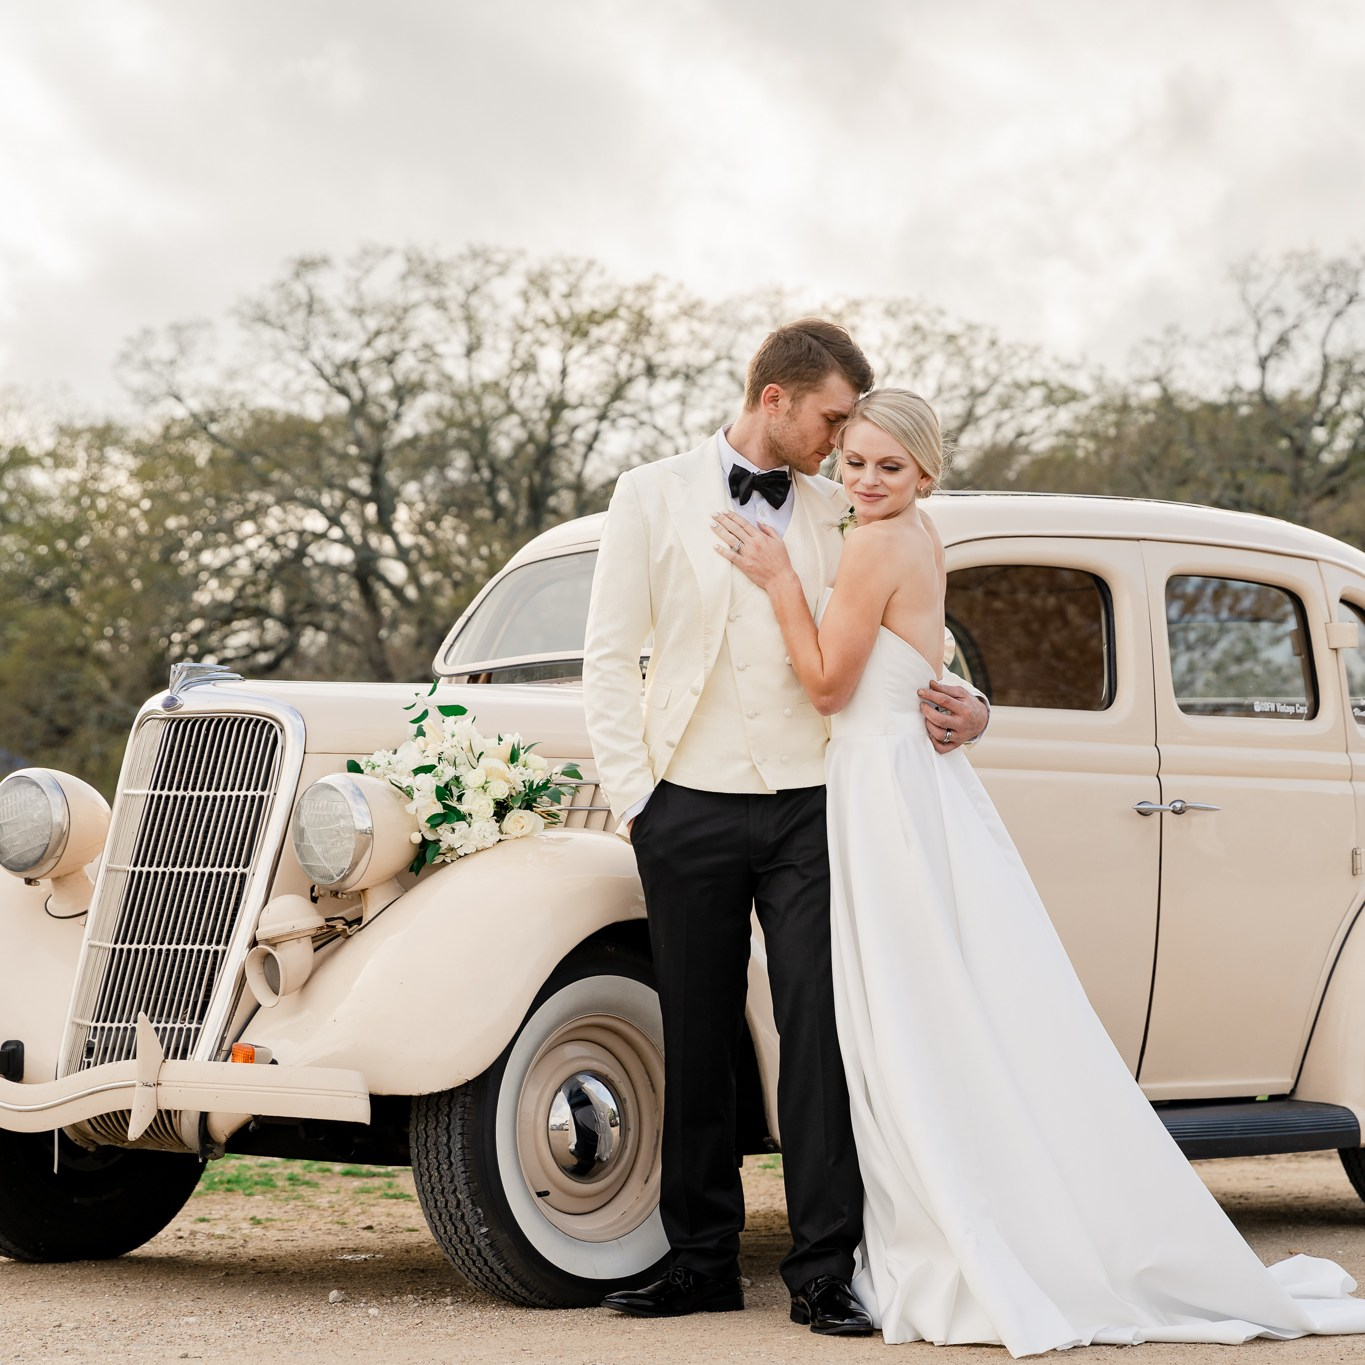 Texas Ranch Wedding, Bridal Portraits, Texas Bride, Brides of North Texas, Bridal Portaits on a ranch, wedding dress, flower mound wedding photographer, vintage car, Emerson Venue, East Dallas Wedding, Elegant Wedding, DFW Wedding